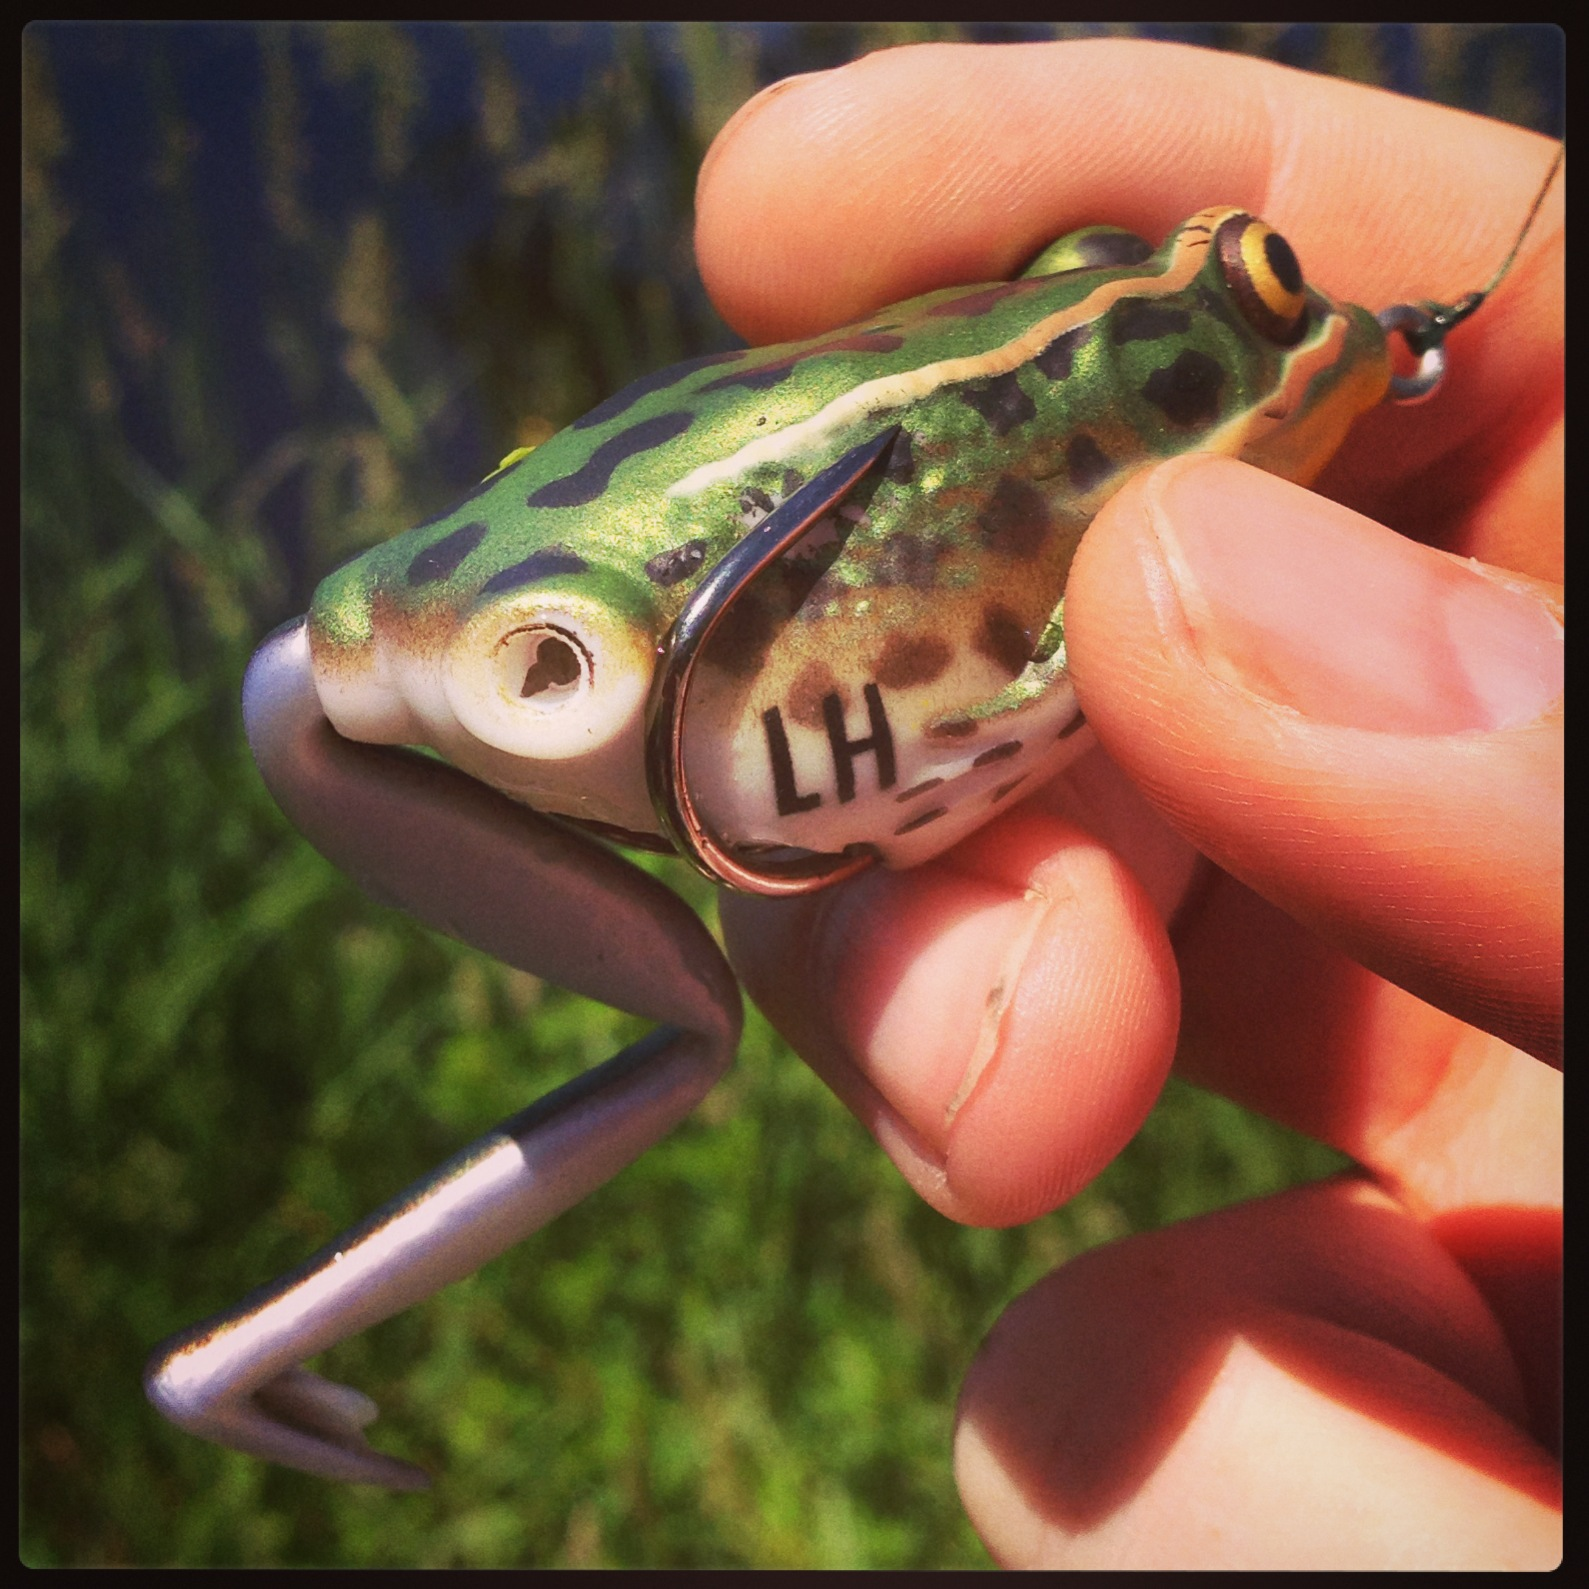 Bass junkies frog pond lunker hunt lunker frog review for Frogs for fishing